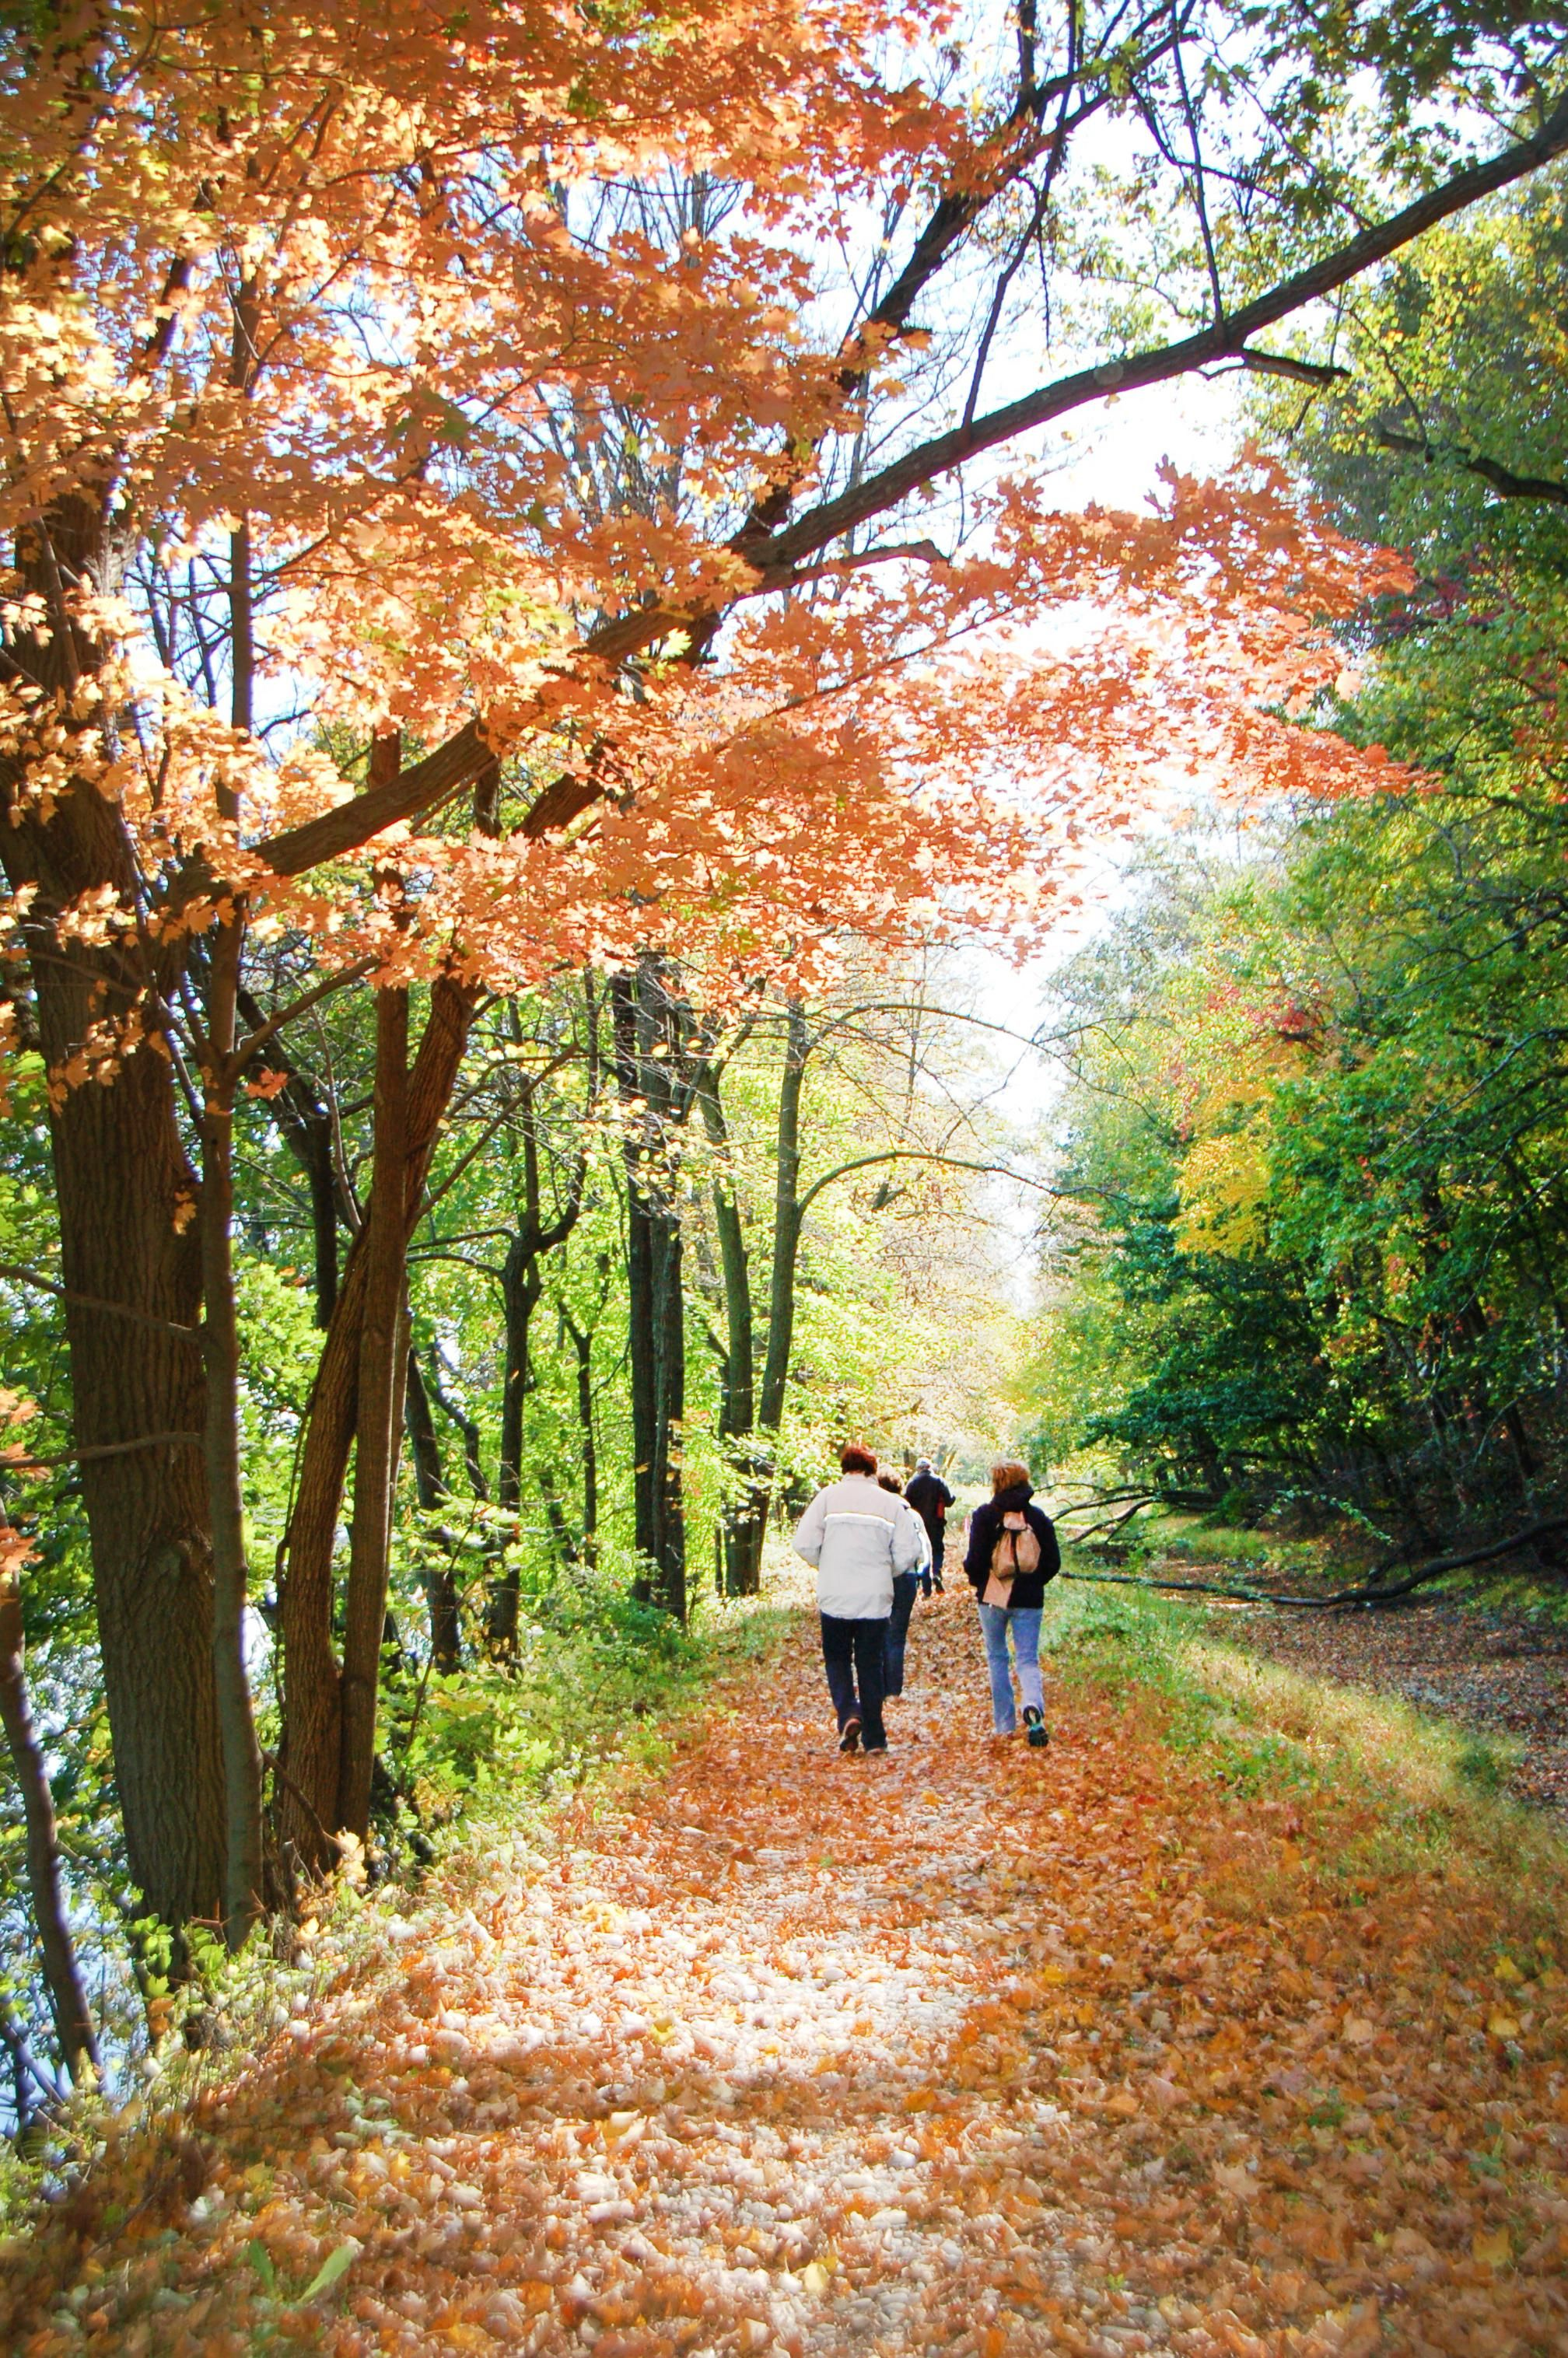 ALL THOSE MILES! Program to celebrate 25 years of walks